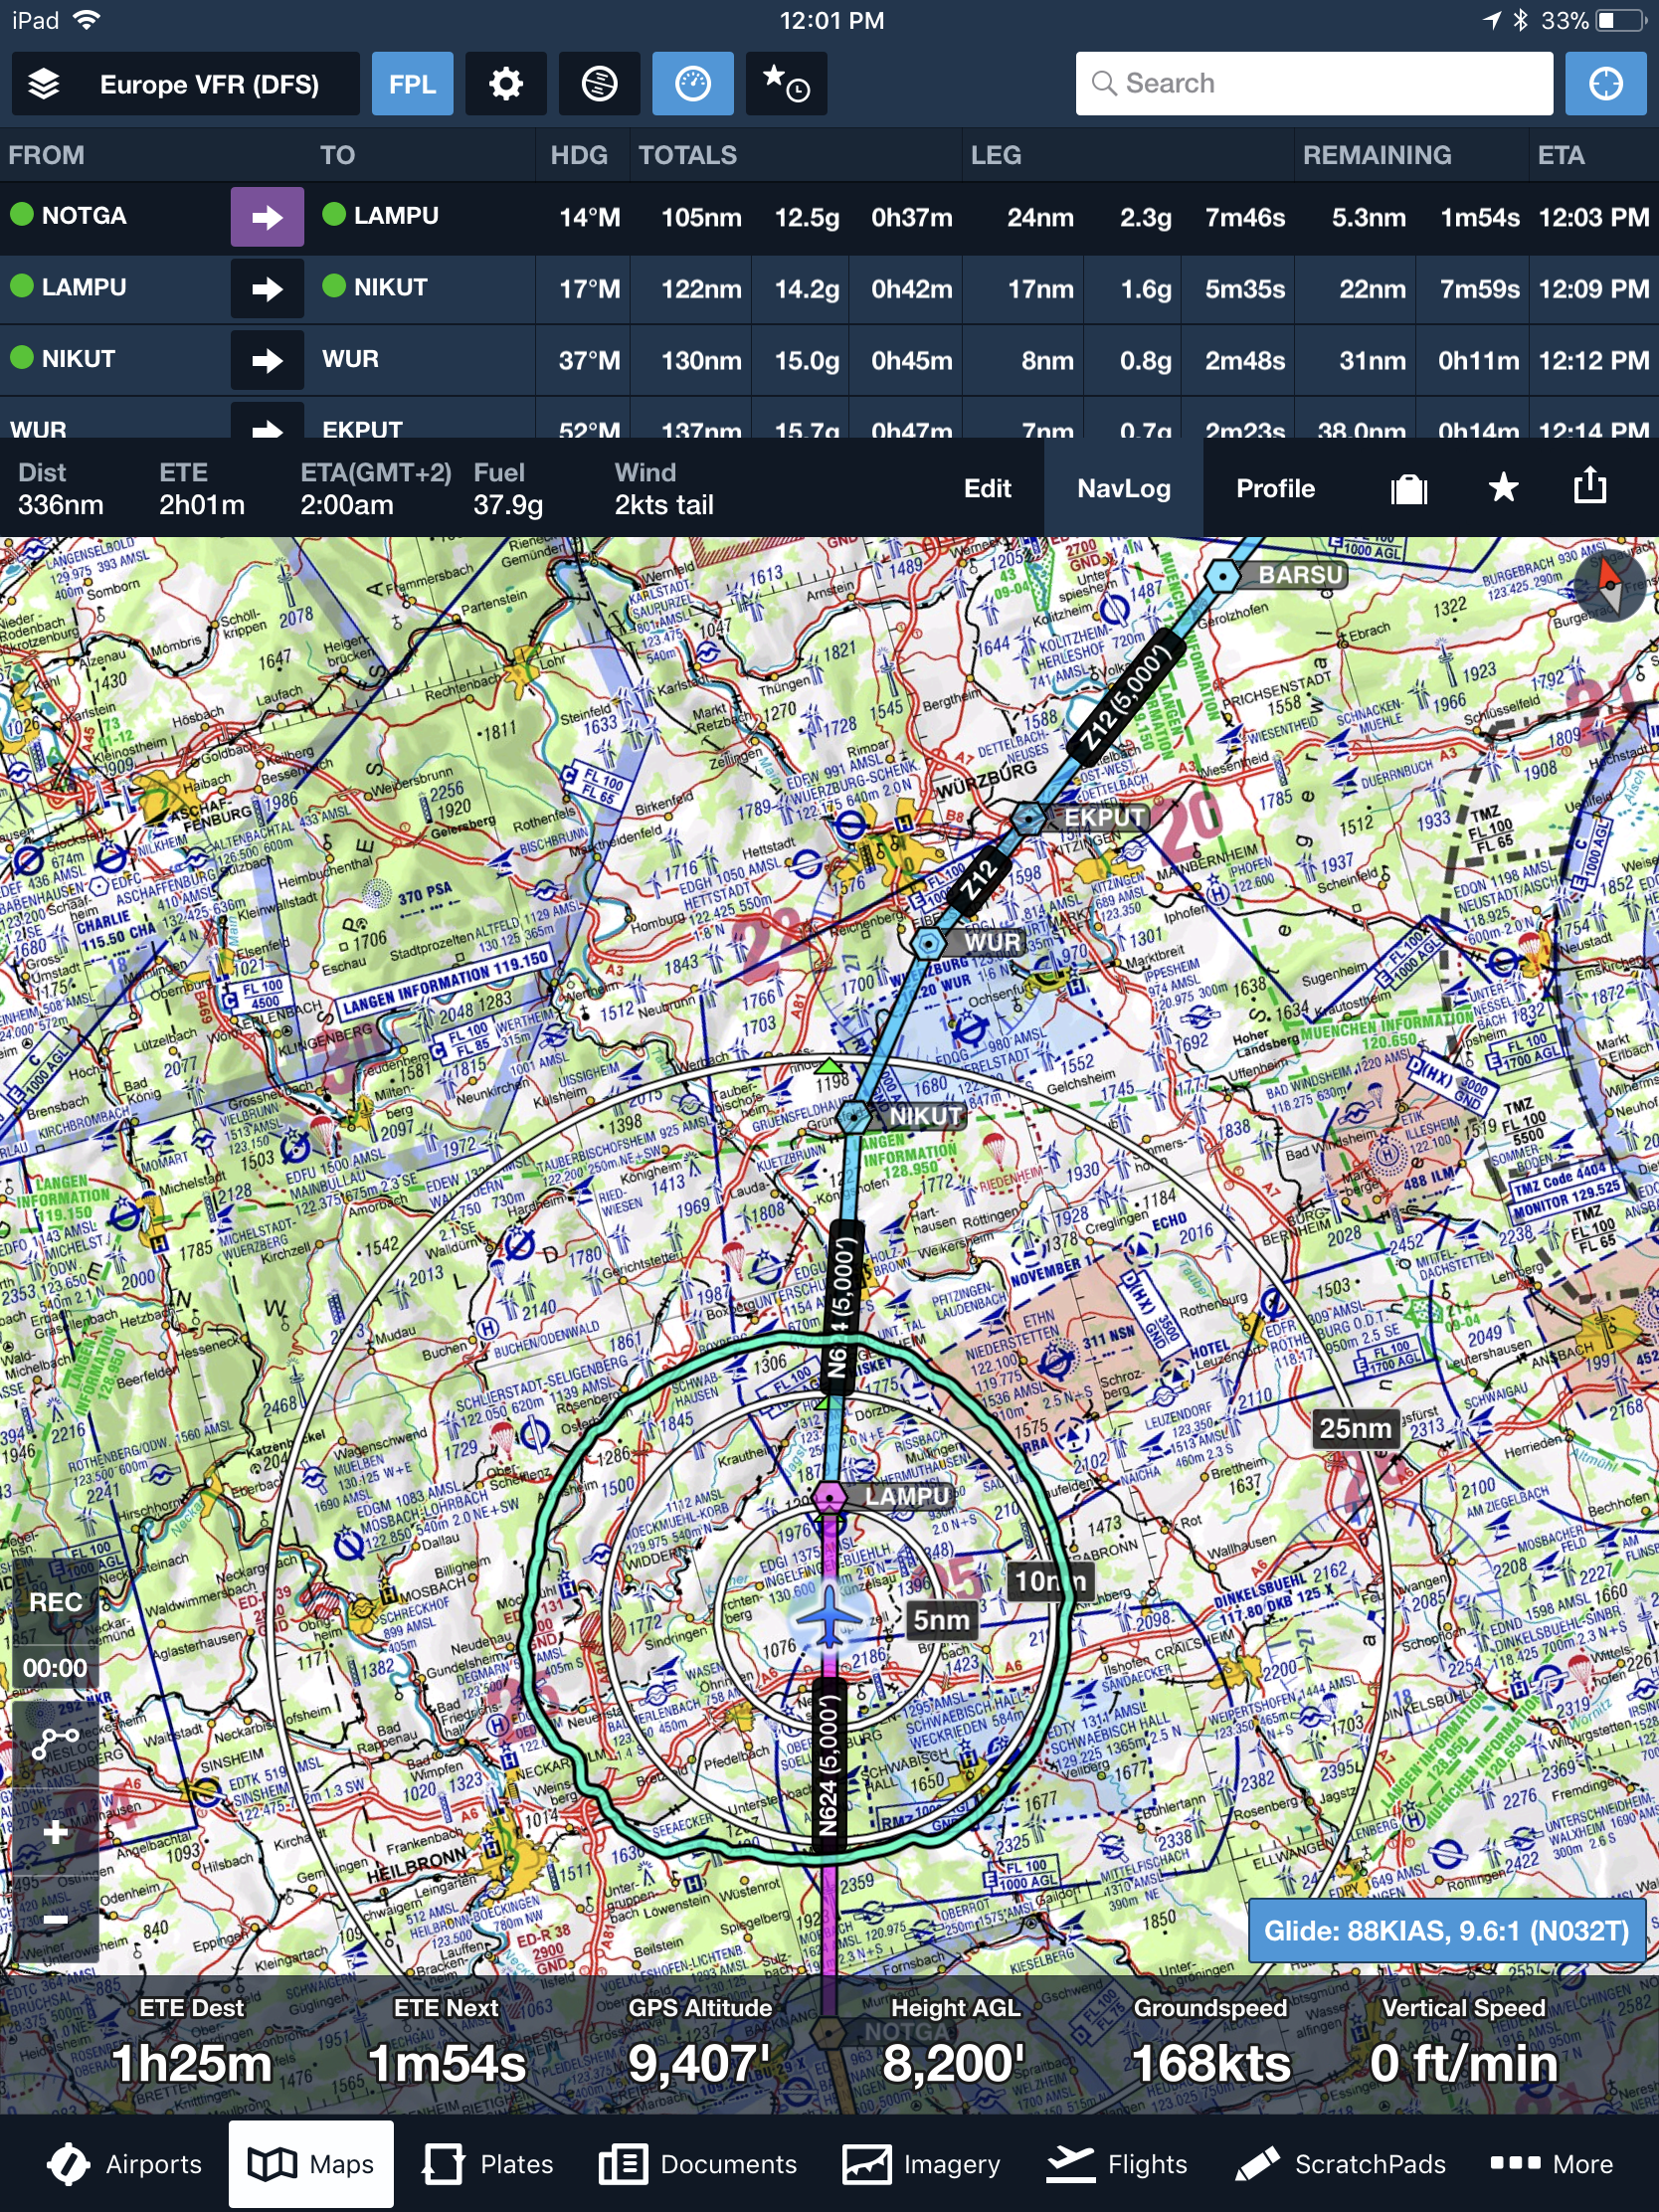 foreflight moving map with dfs vfr chartpng